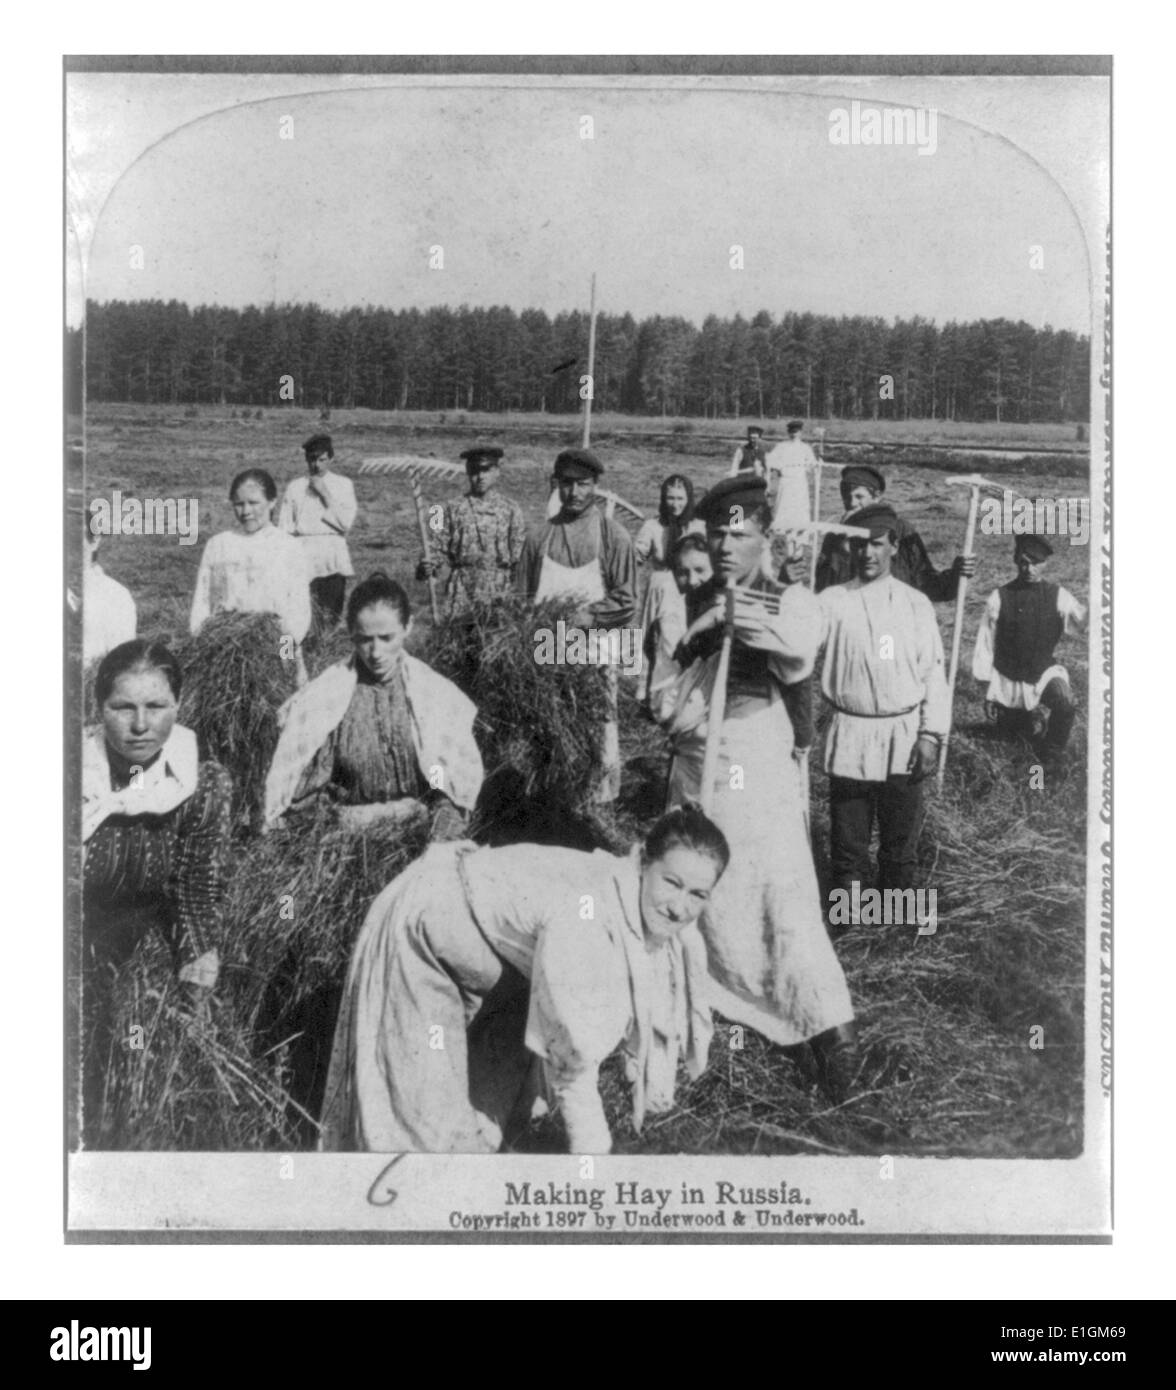 Photograph shows a group of Russian women and men making hay in Russia. Dated 1897 - Stock Image